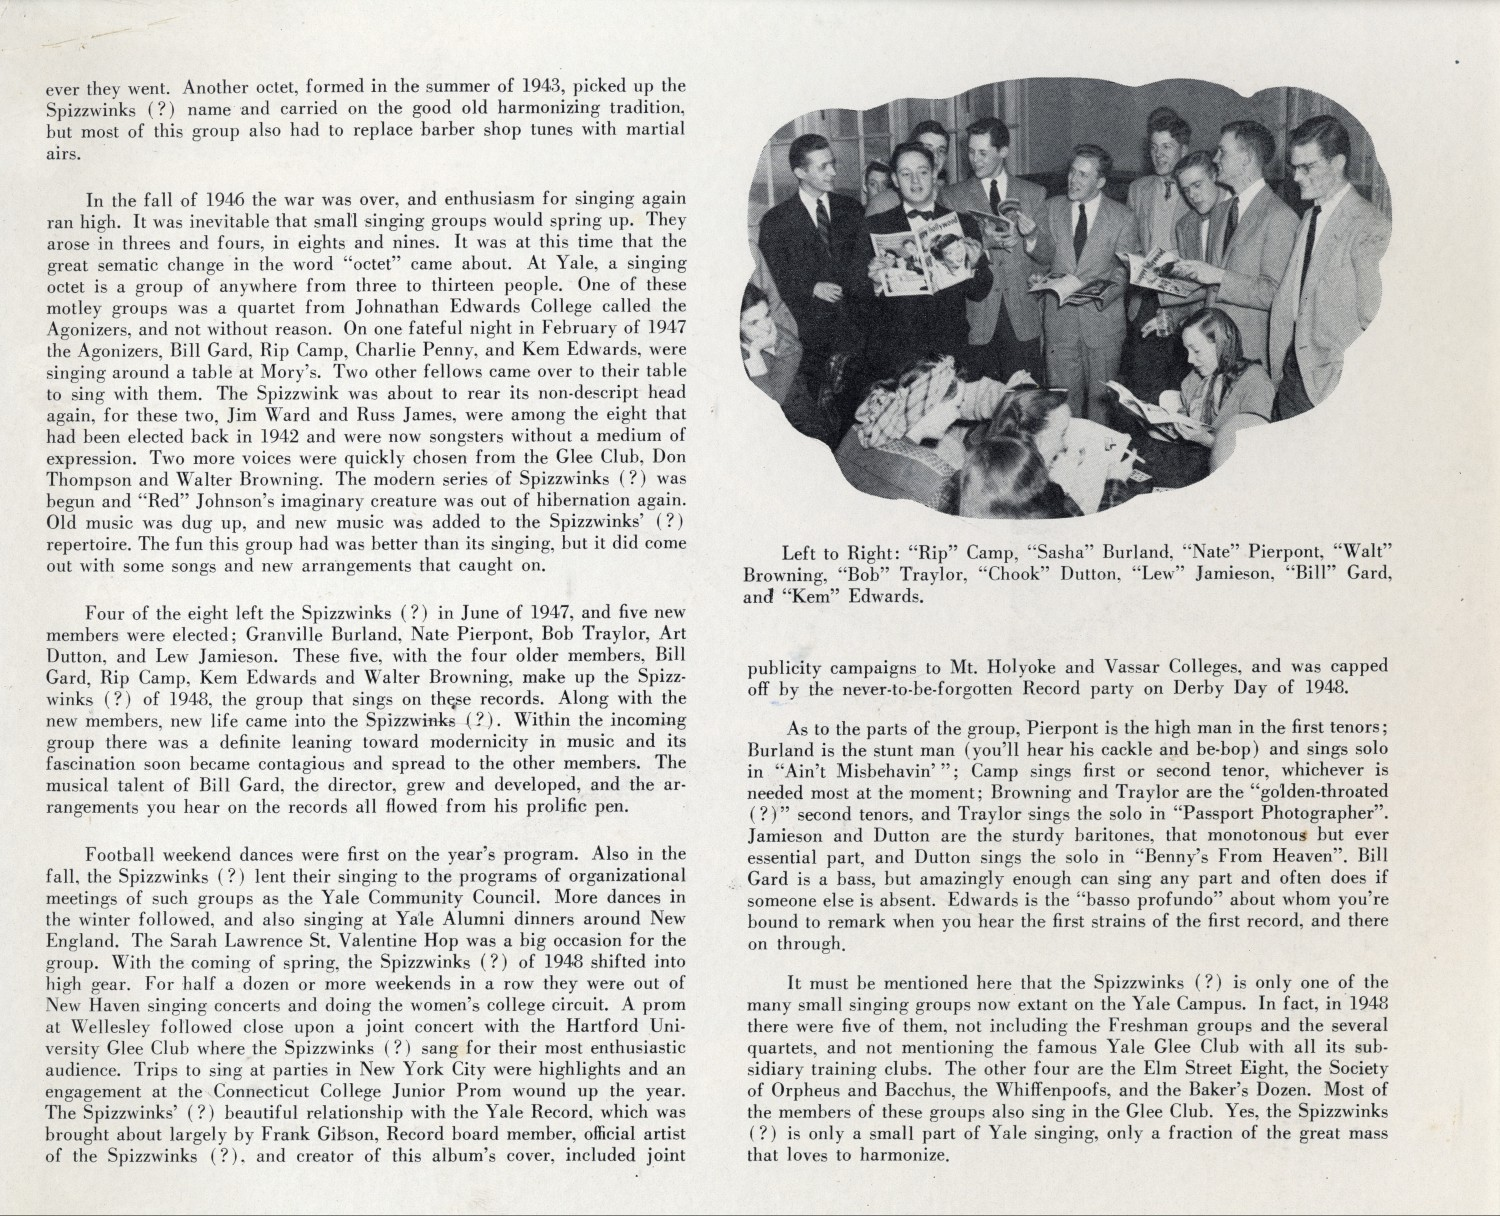 1948 Songs of the Spizzwinks - inside cover right